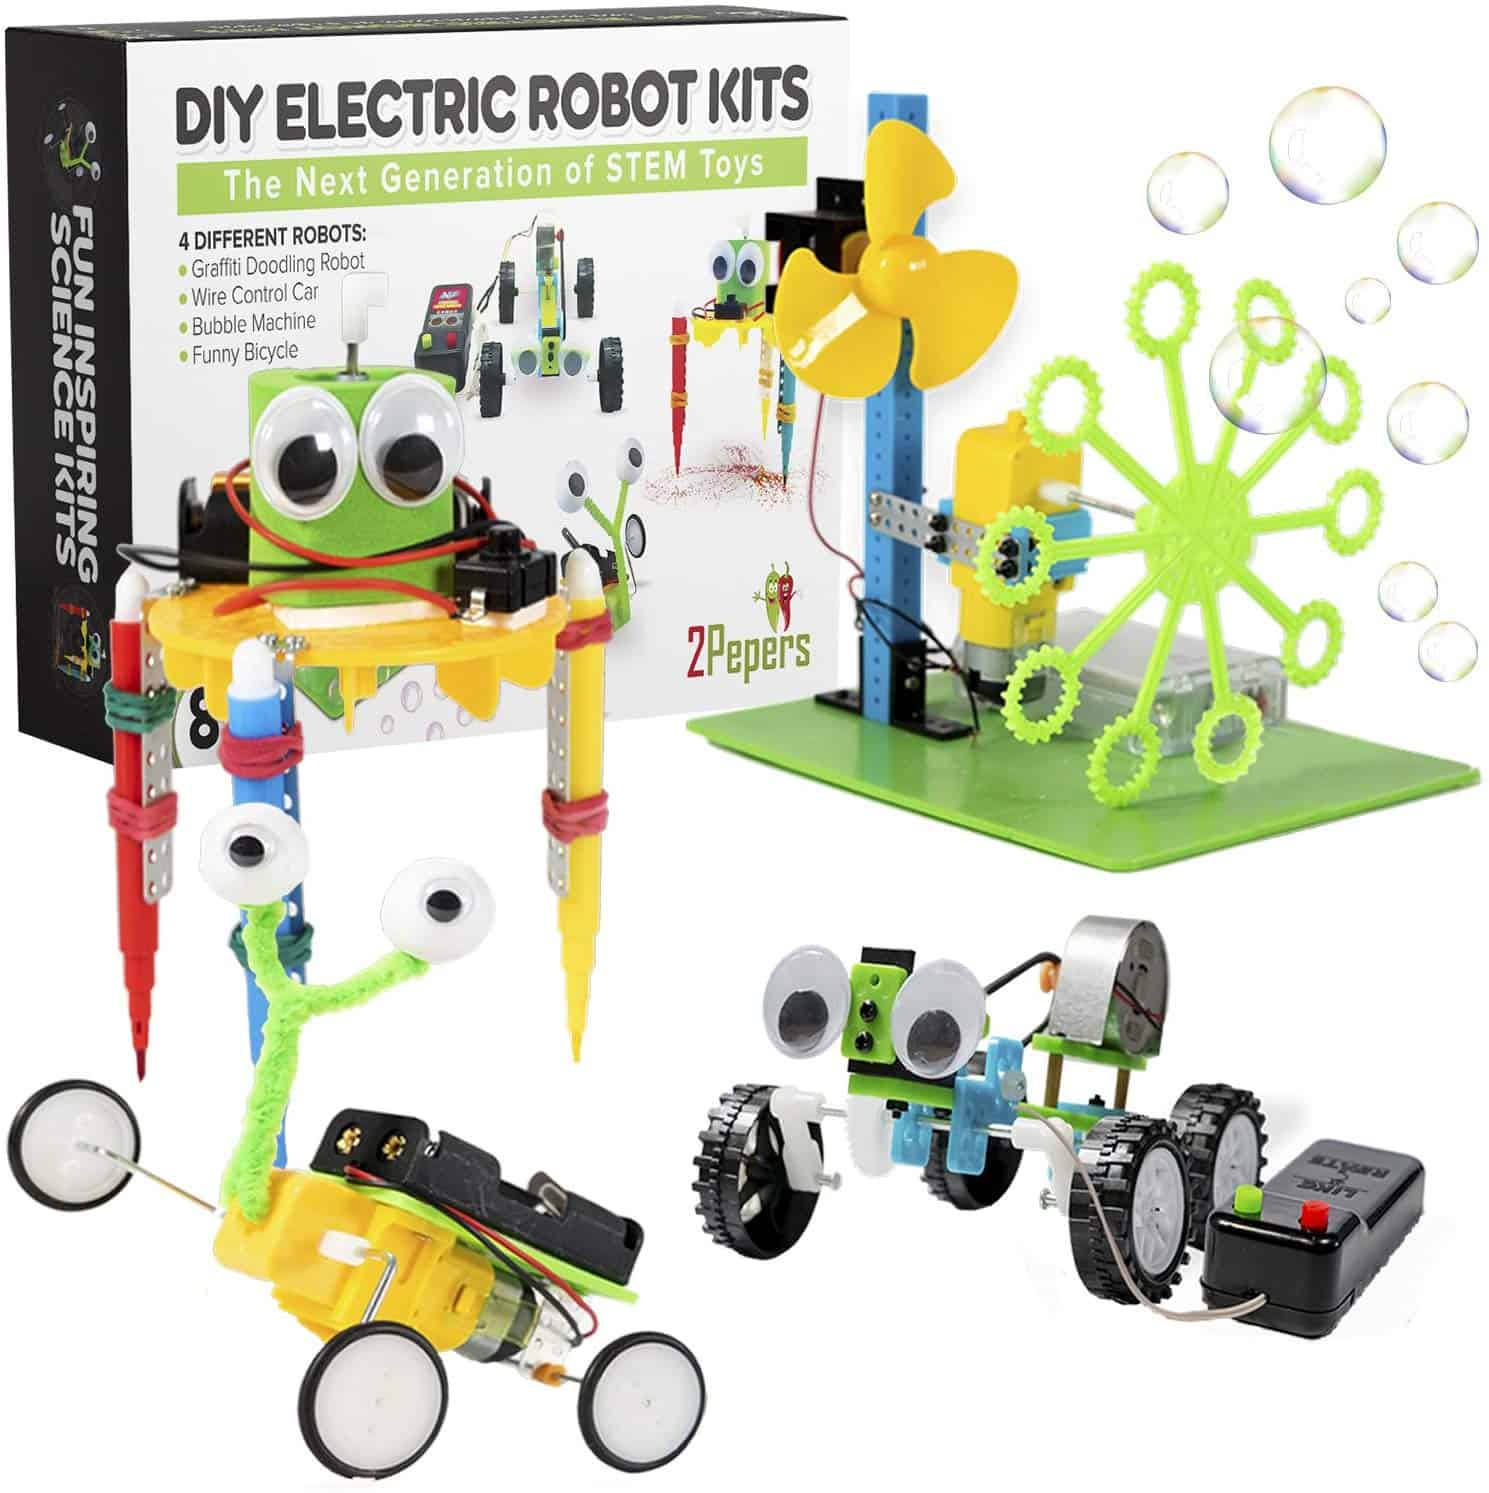 2Pepers Electric Motor Robotic Science Kits for Kids